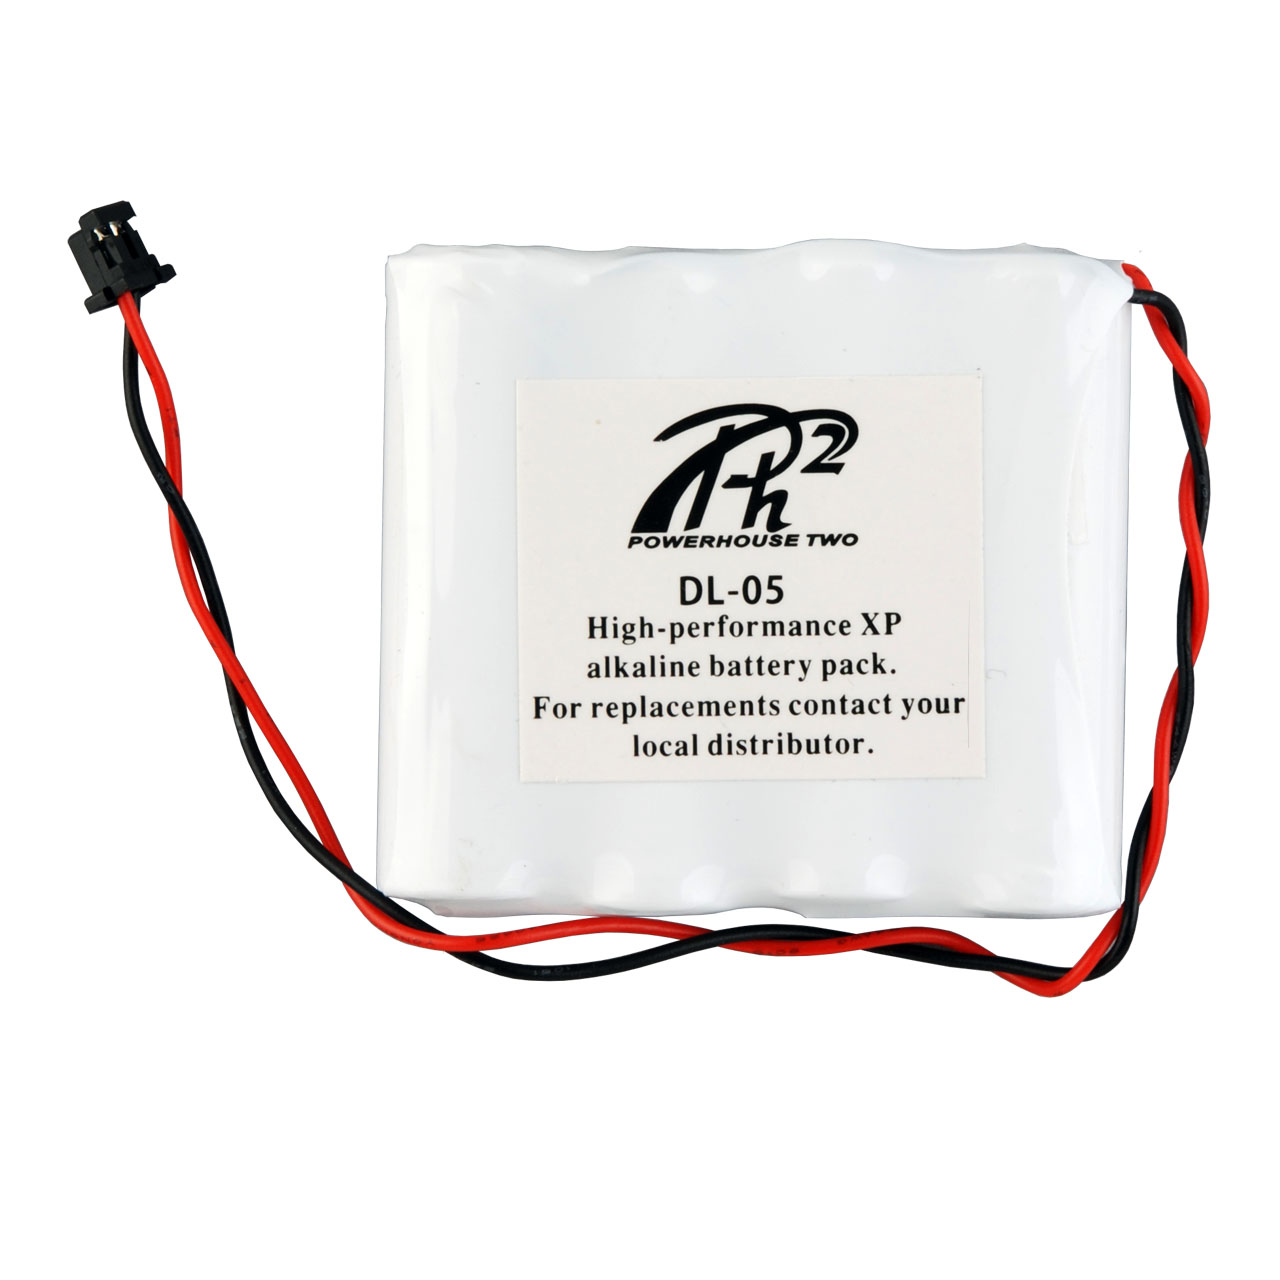 DL-05 Hospitality Battery Pack